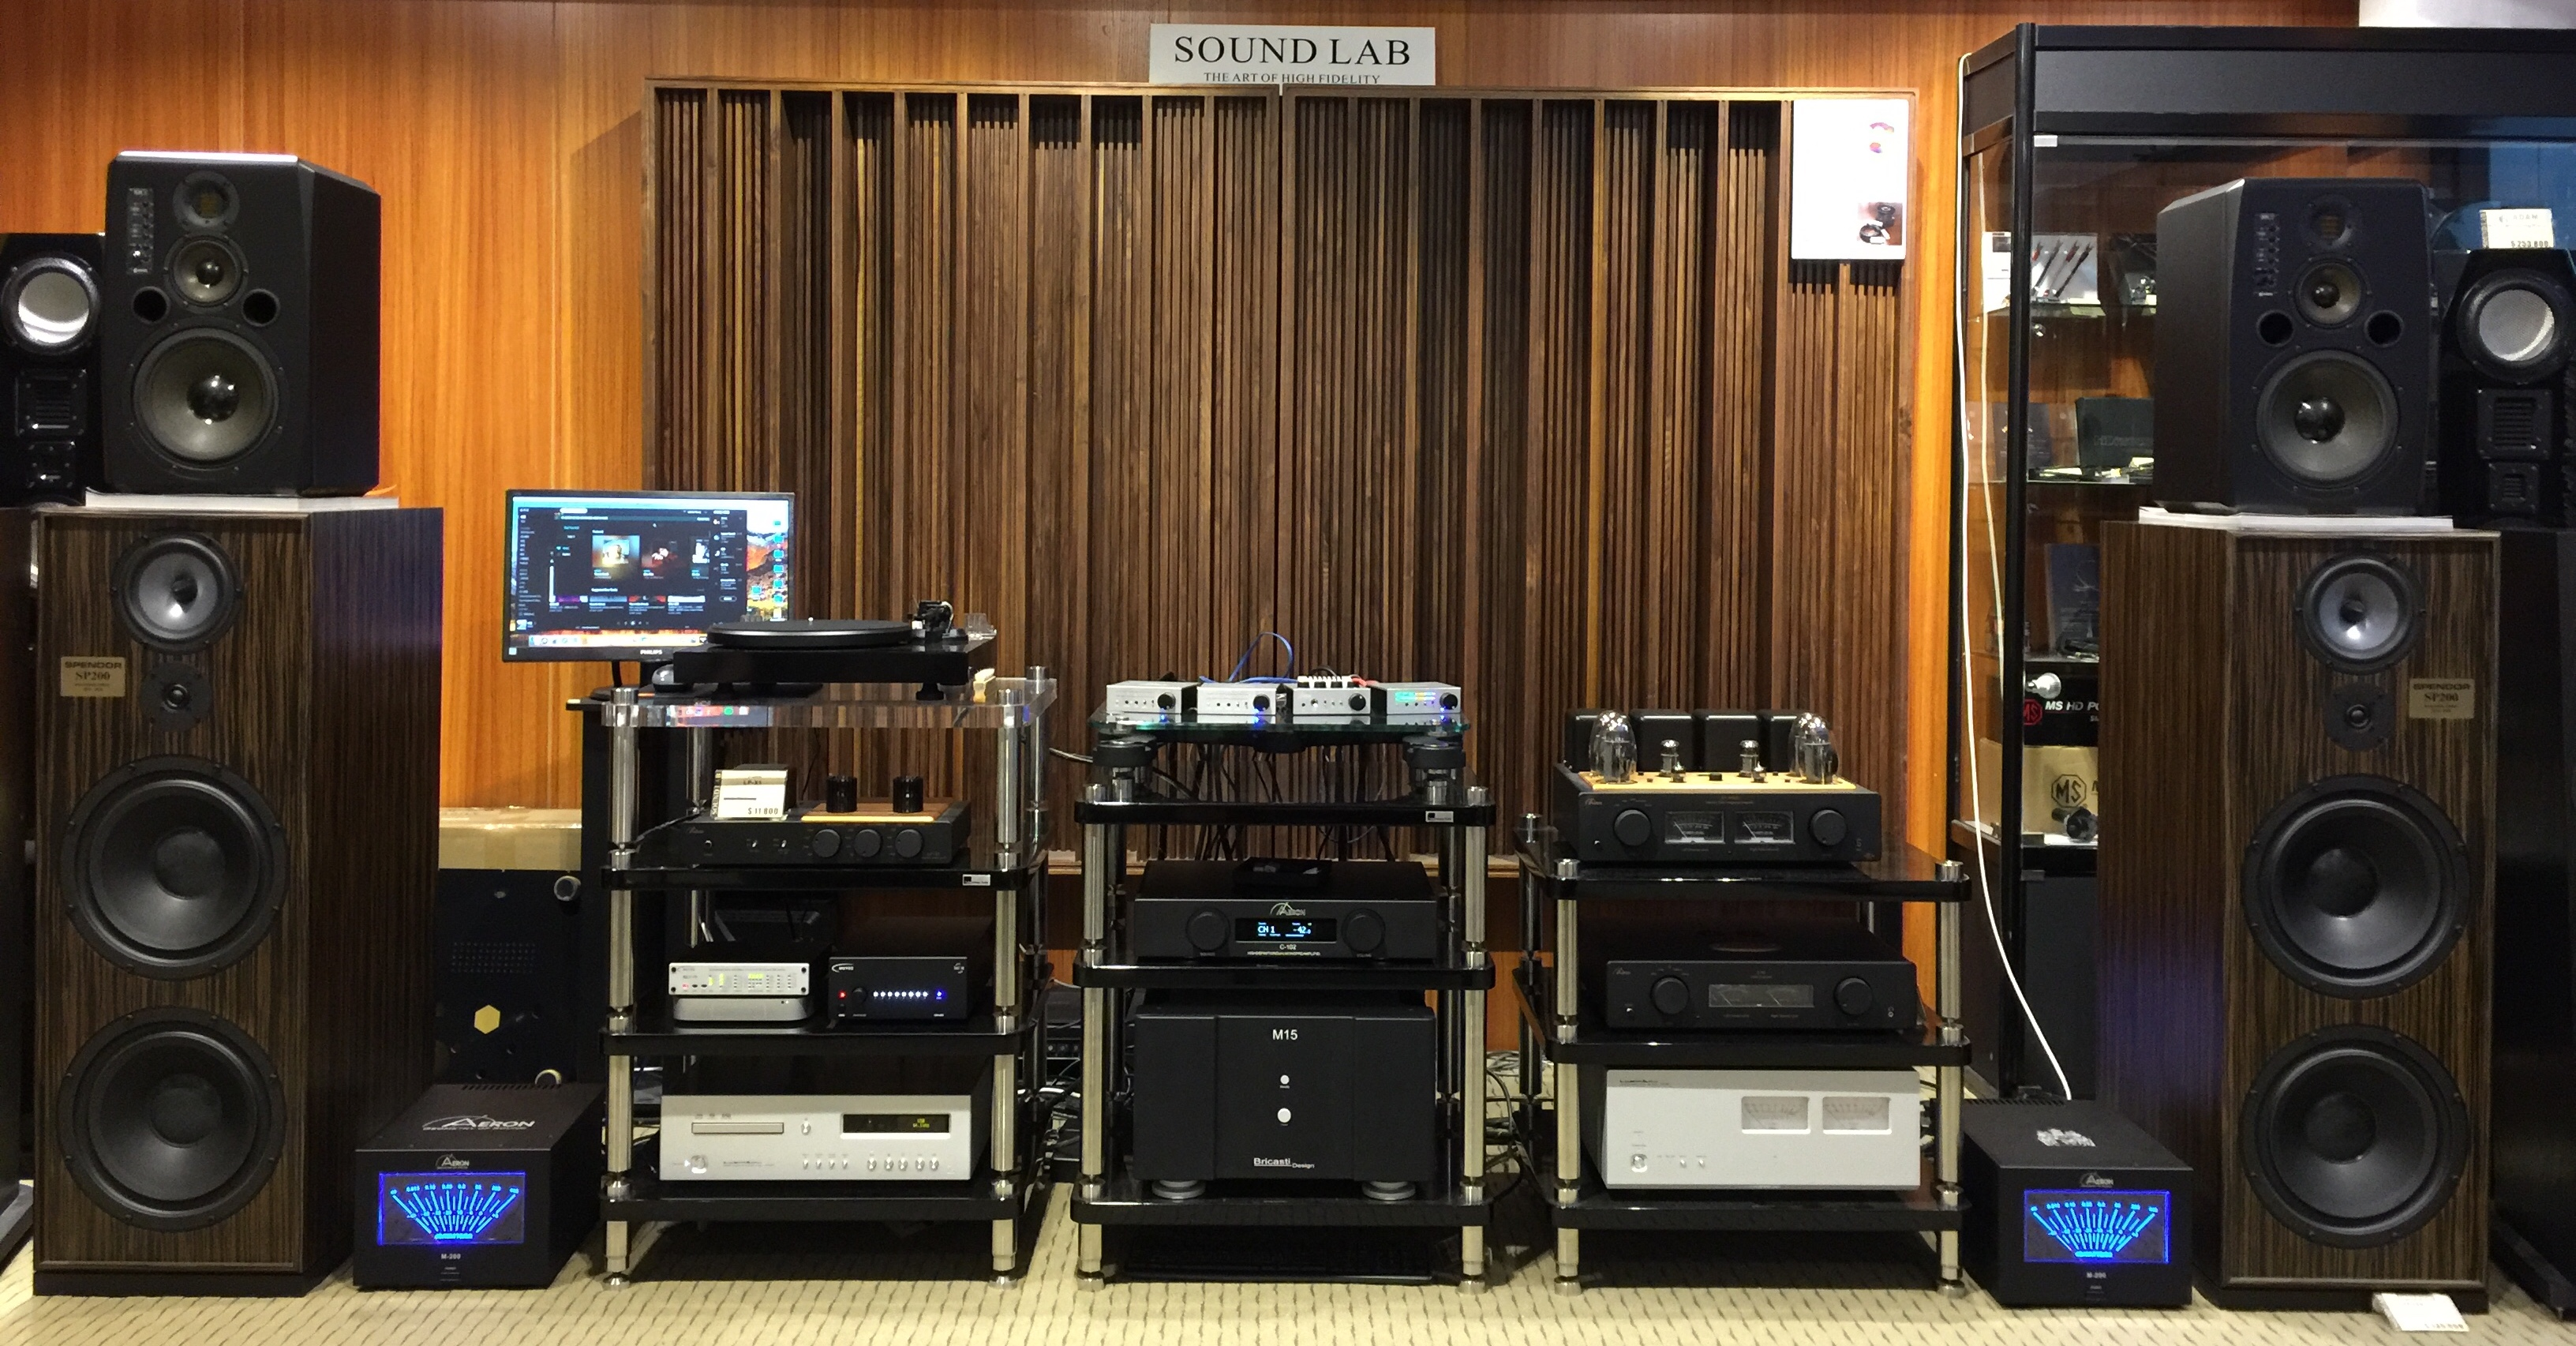 MUTEC - Professional A/V and High-End Equipment - Up-To-Date